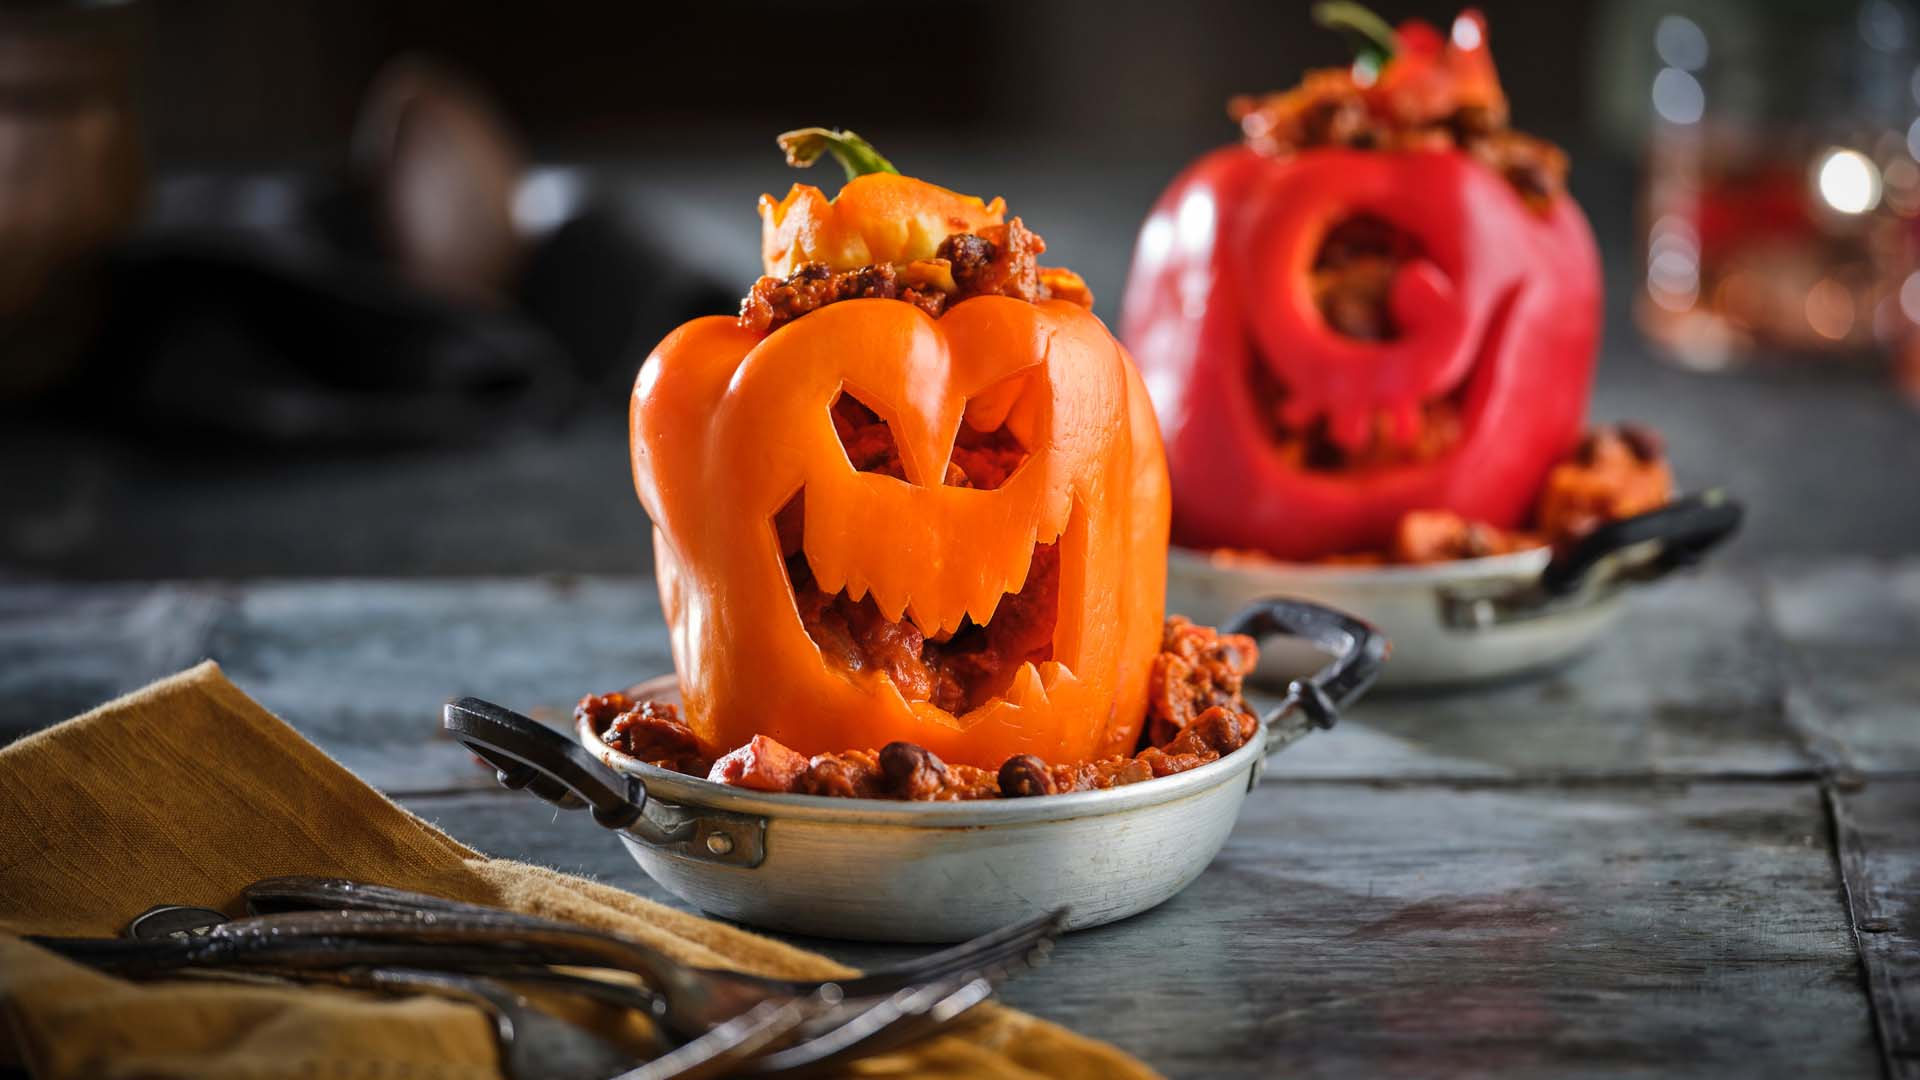 Red & Orange pepper with halloween face carving stuffed with chili